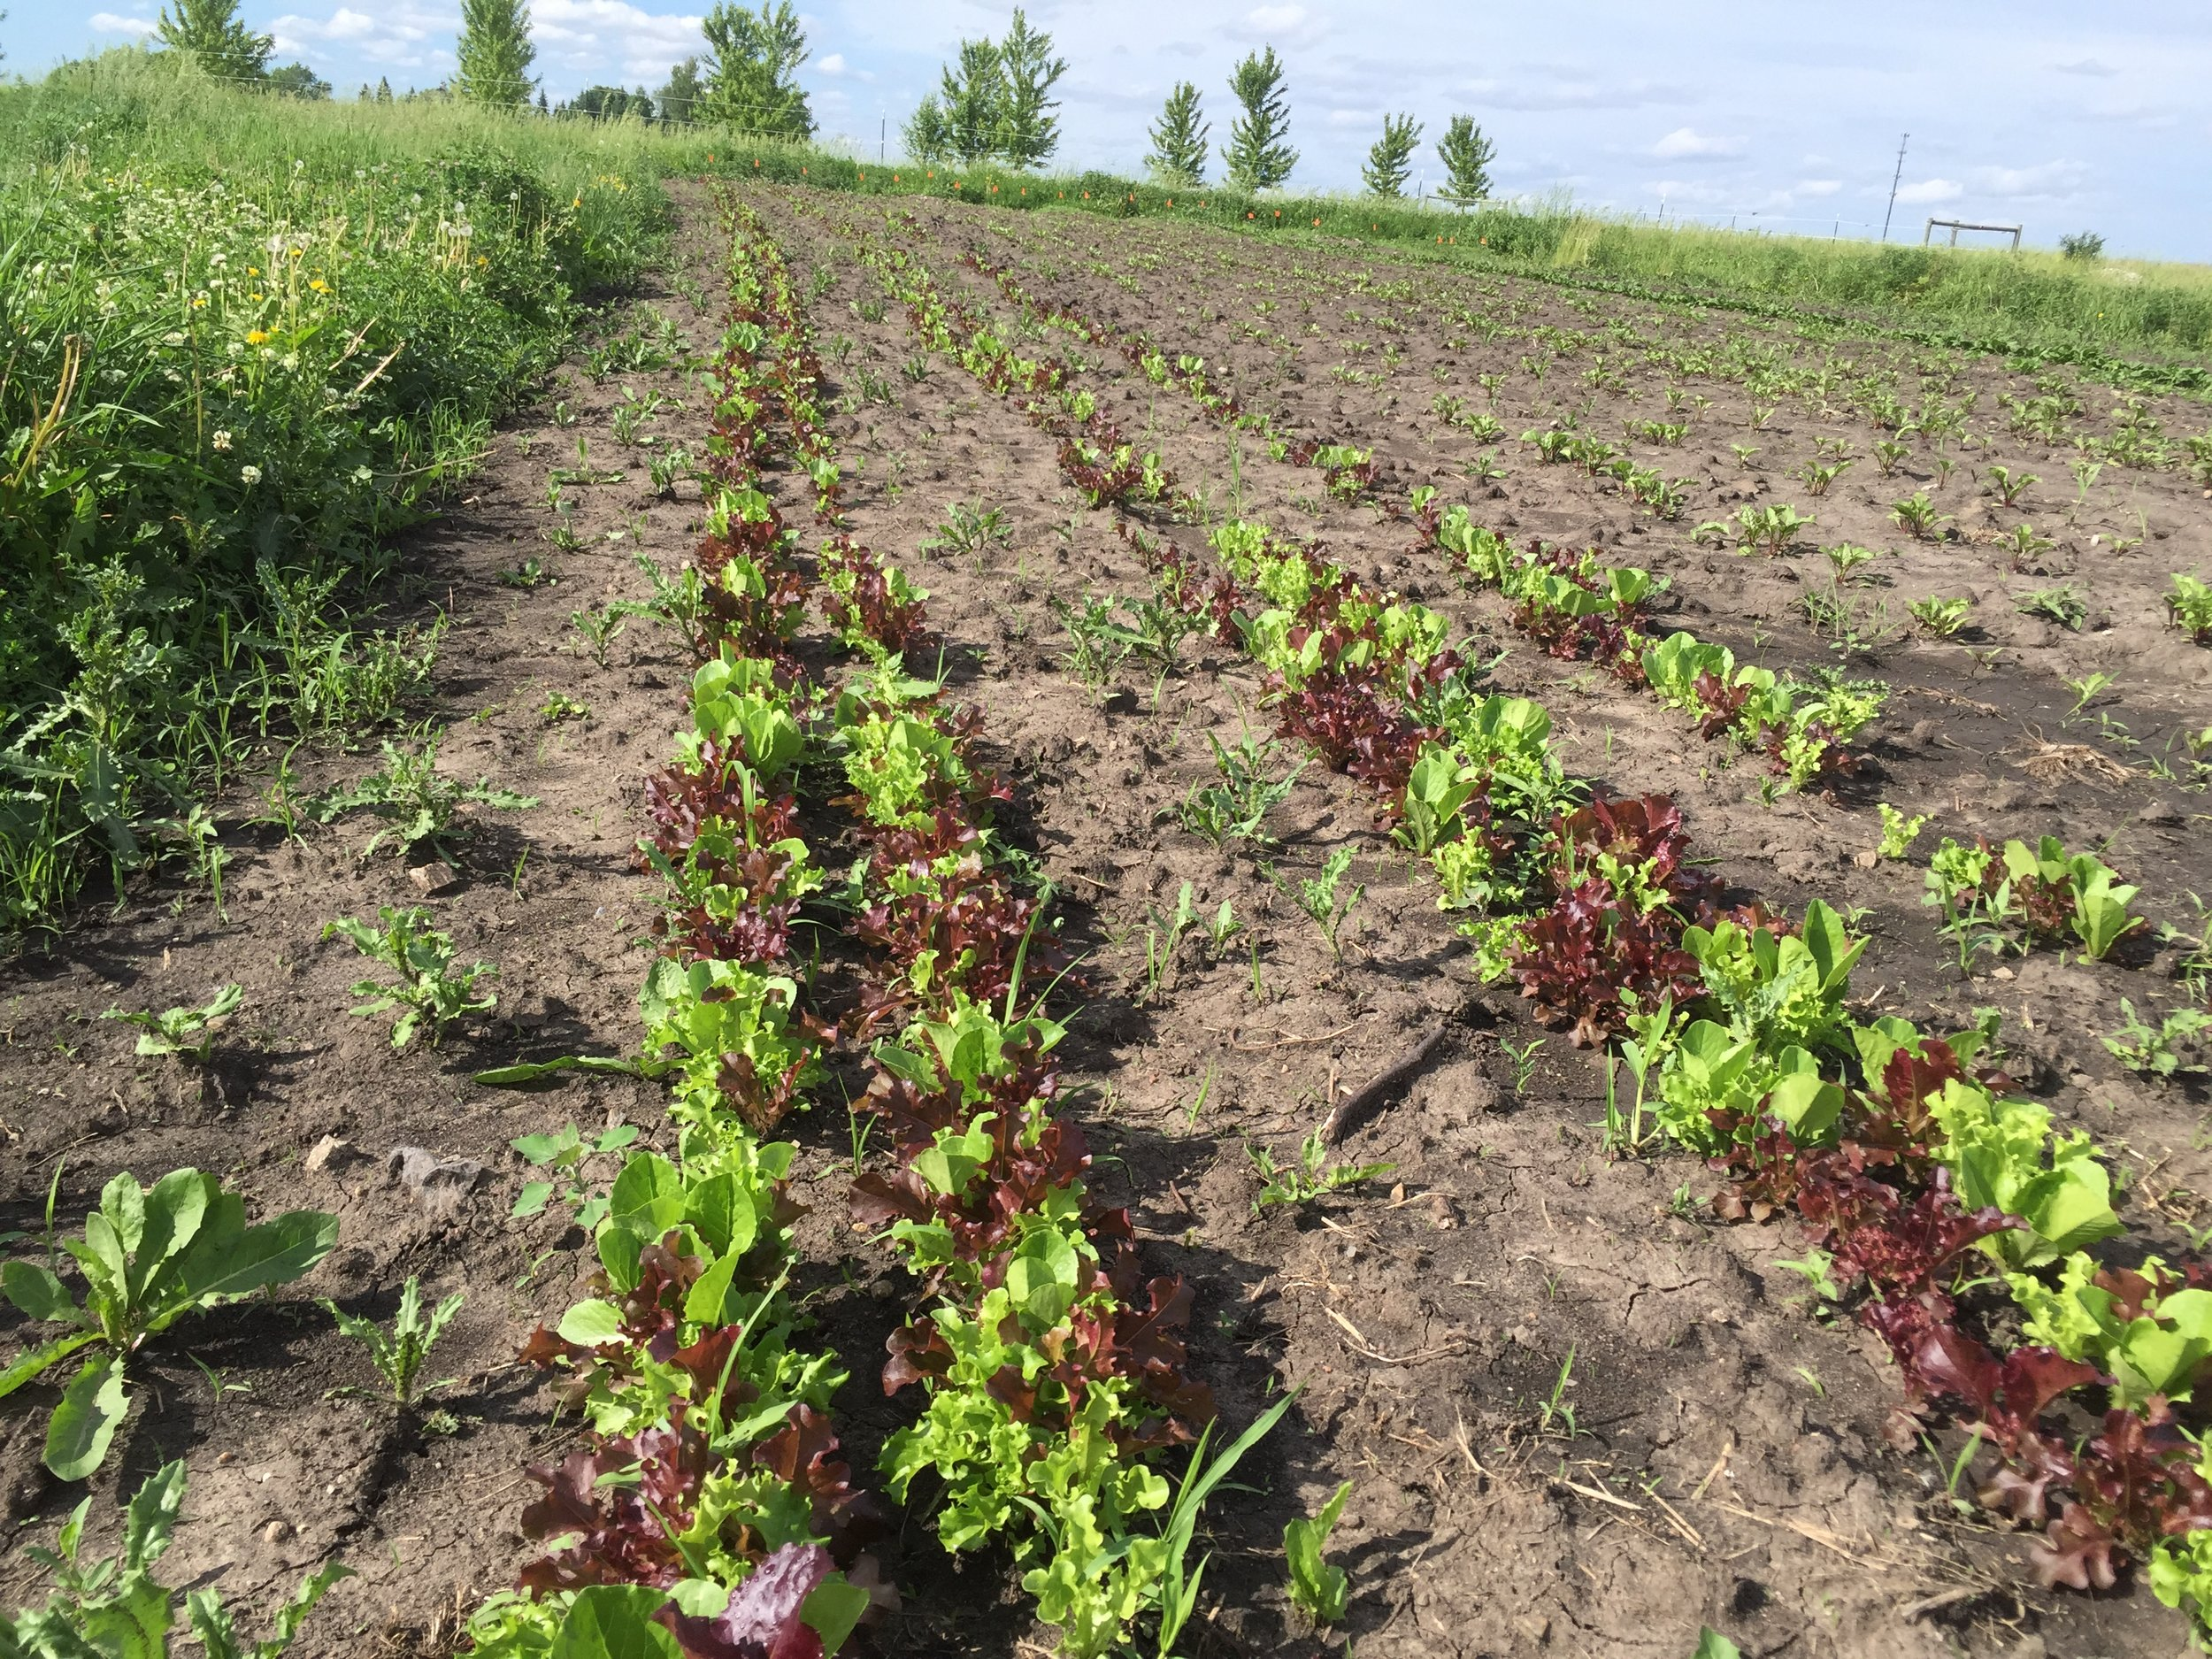 Lettuce mix looks good in the field.